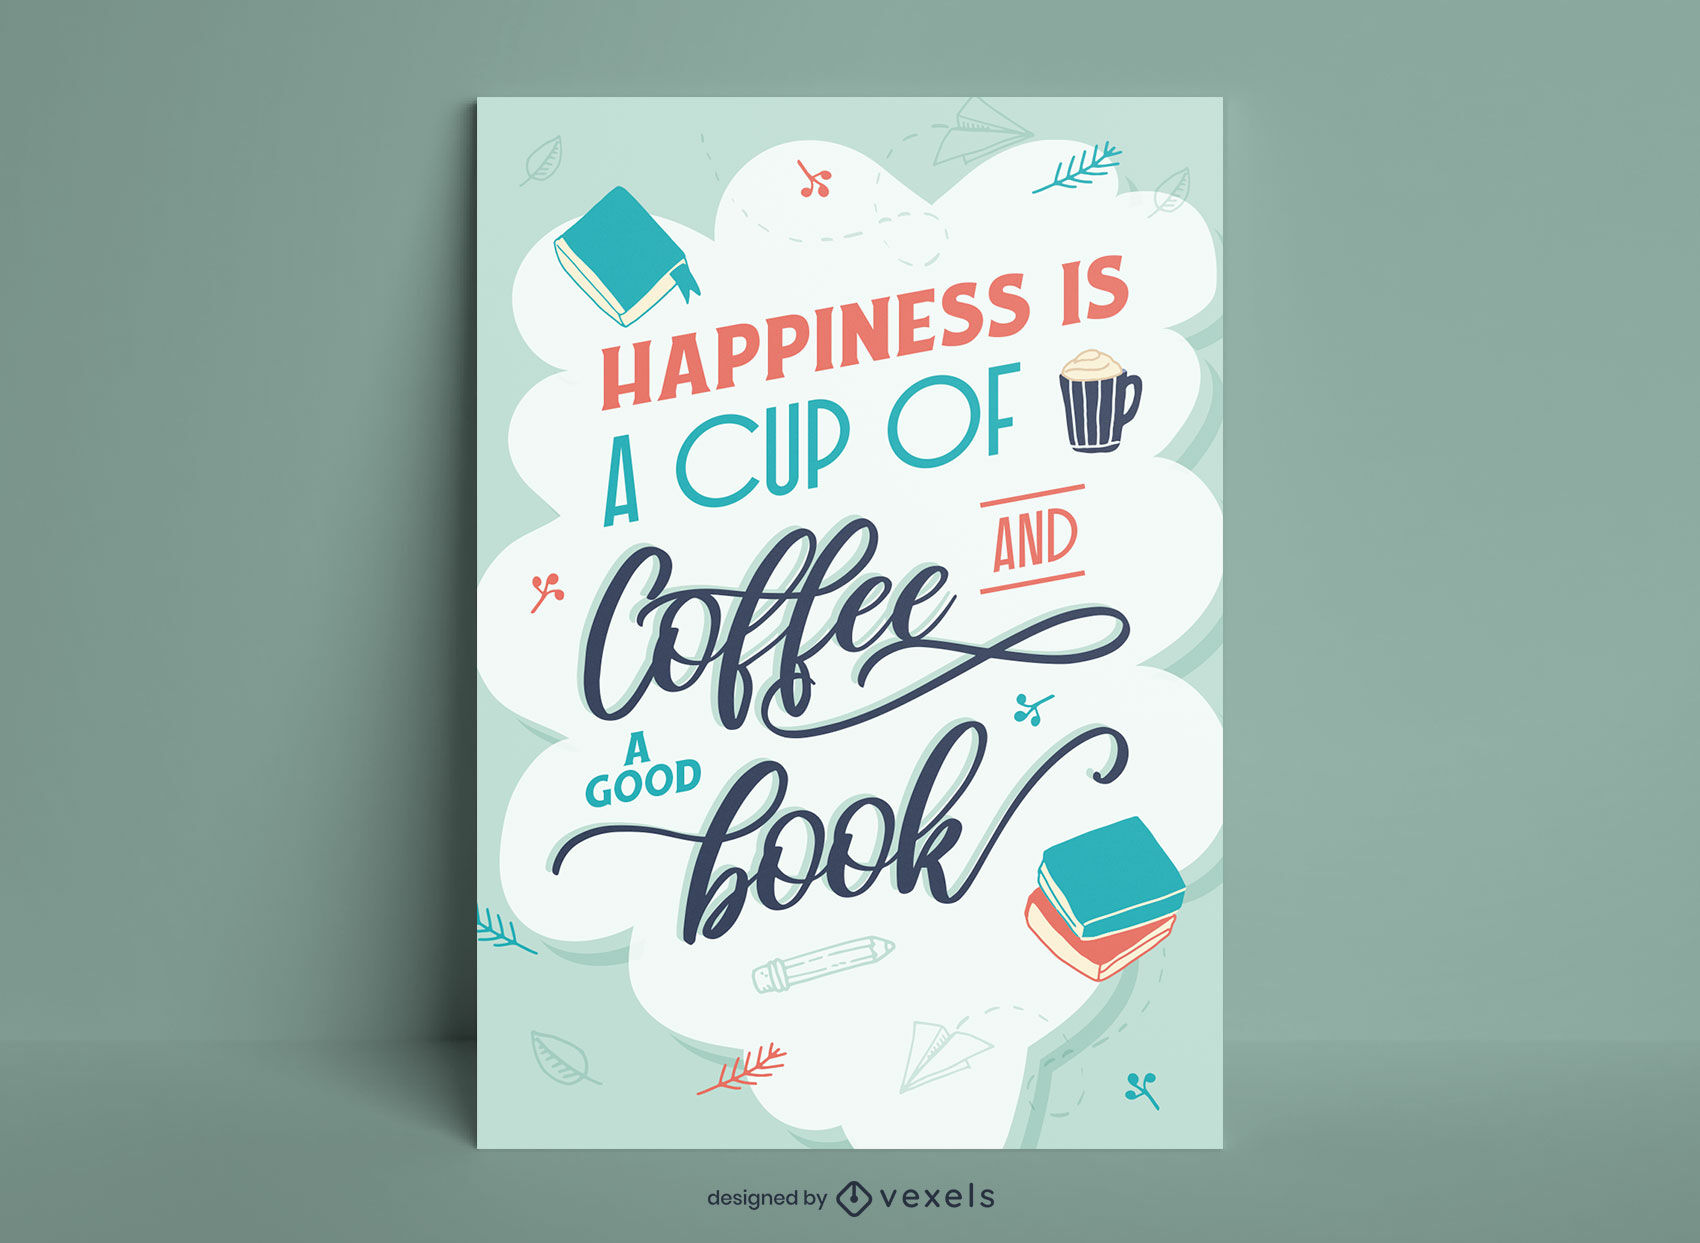 Reading a book happiness poster design